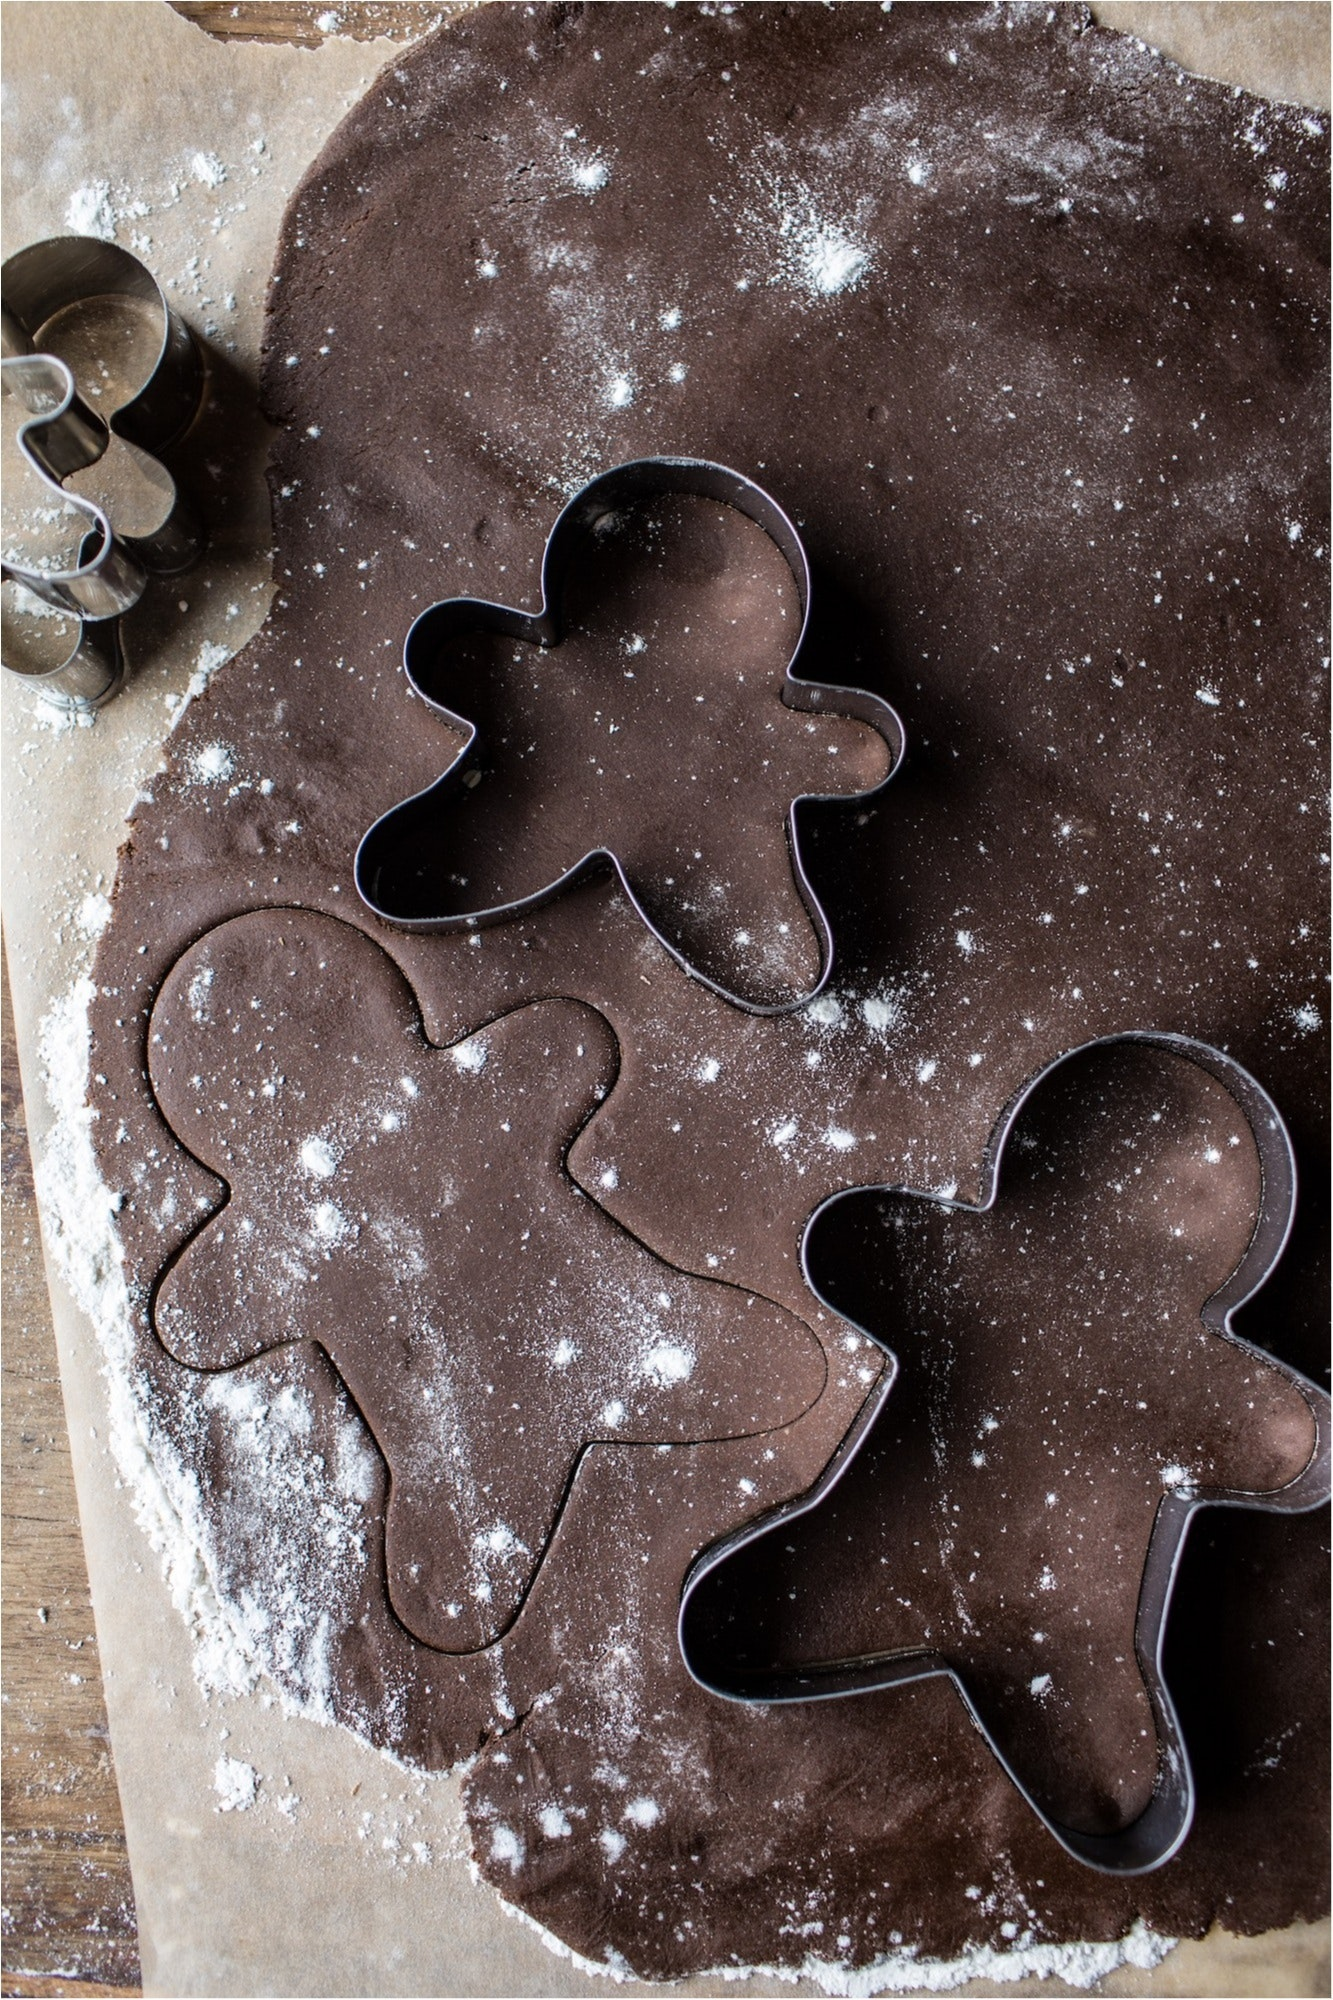 Chocolate-Dipped-Gingerbread-Cookies-with-Vanilla-Salt-1resize